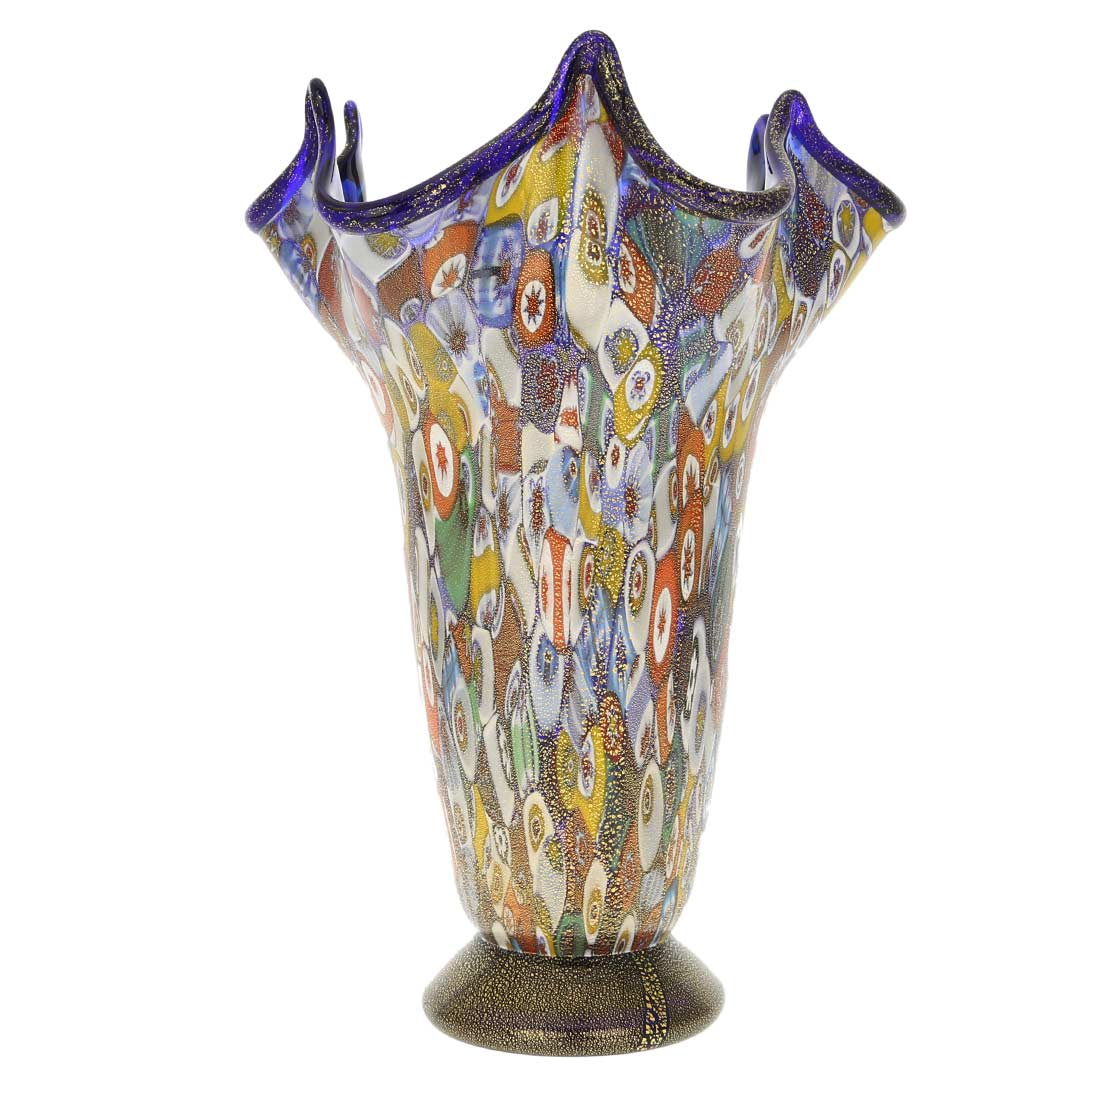 murano glass vases murano millefiori gold art glass fazzoletto vase cobalt blue. Black Bedroom Furniture Sets. Home Design Ideas